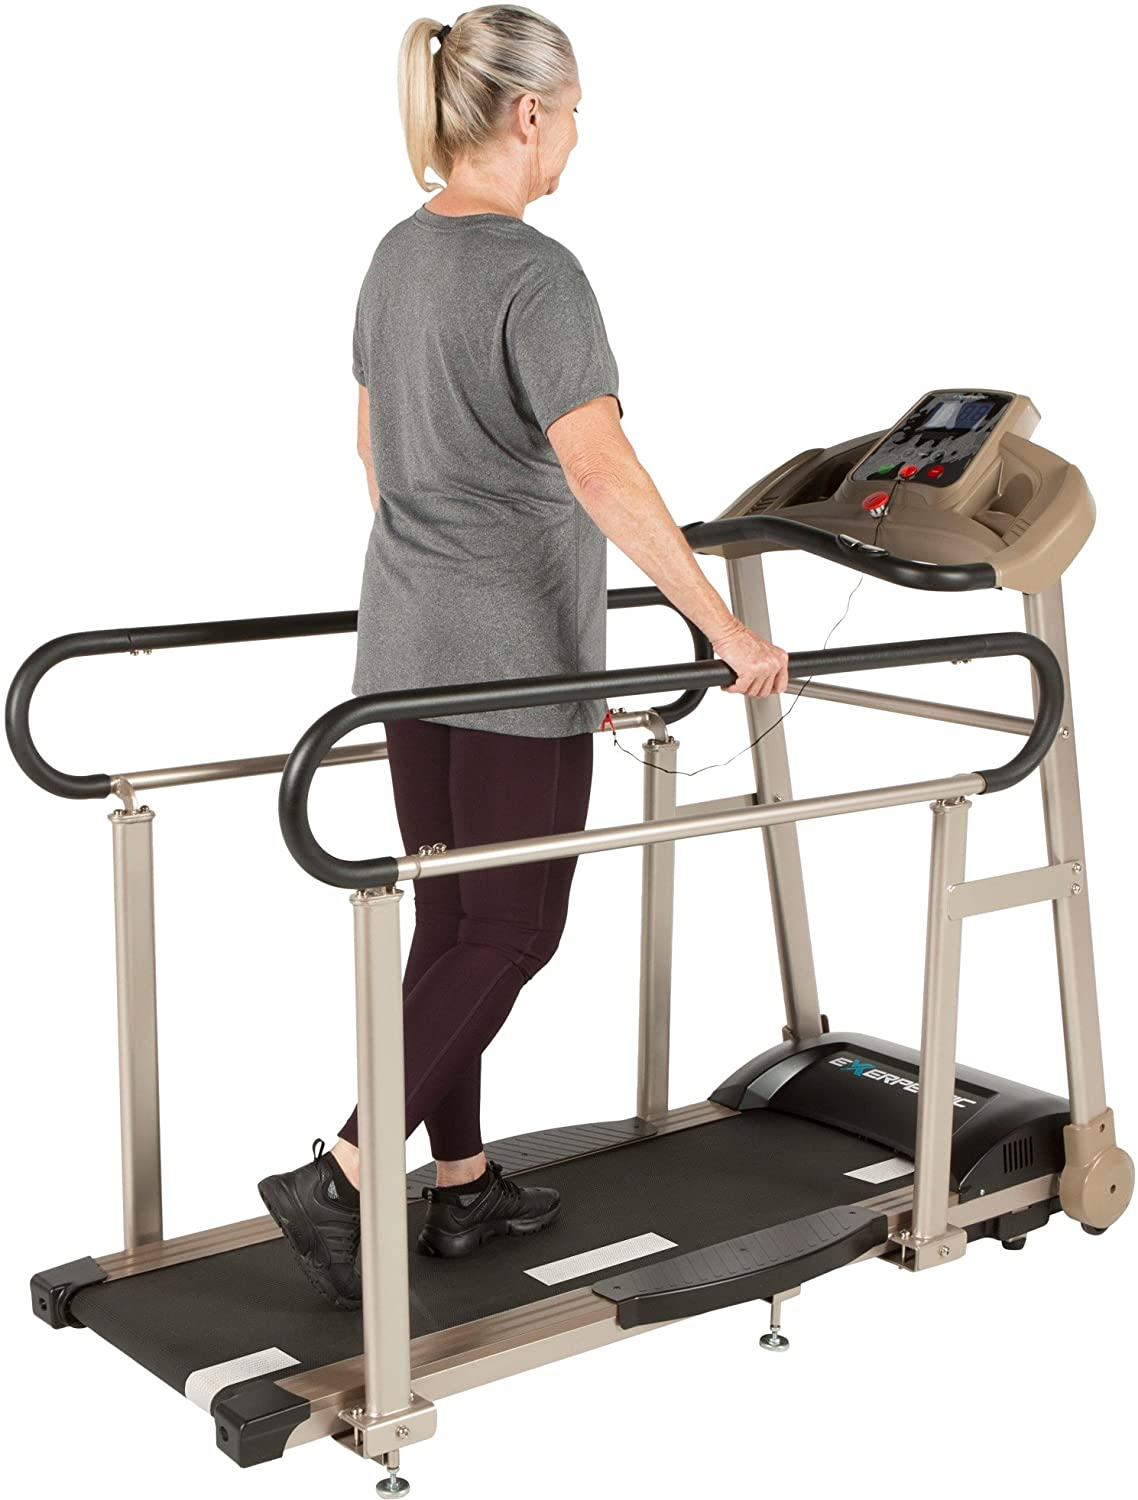 Exerpeutic TF2000 Recovery Fitness Walking Treadmill